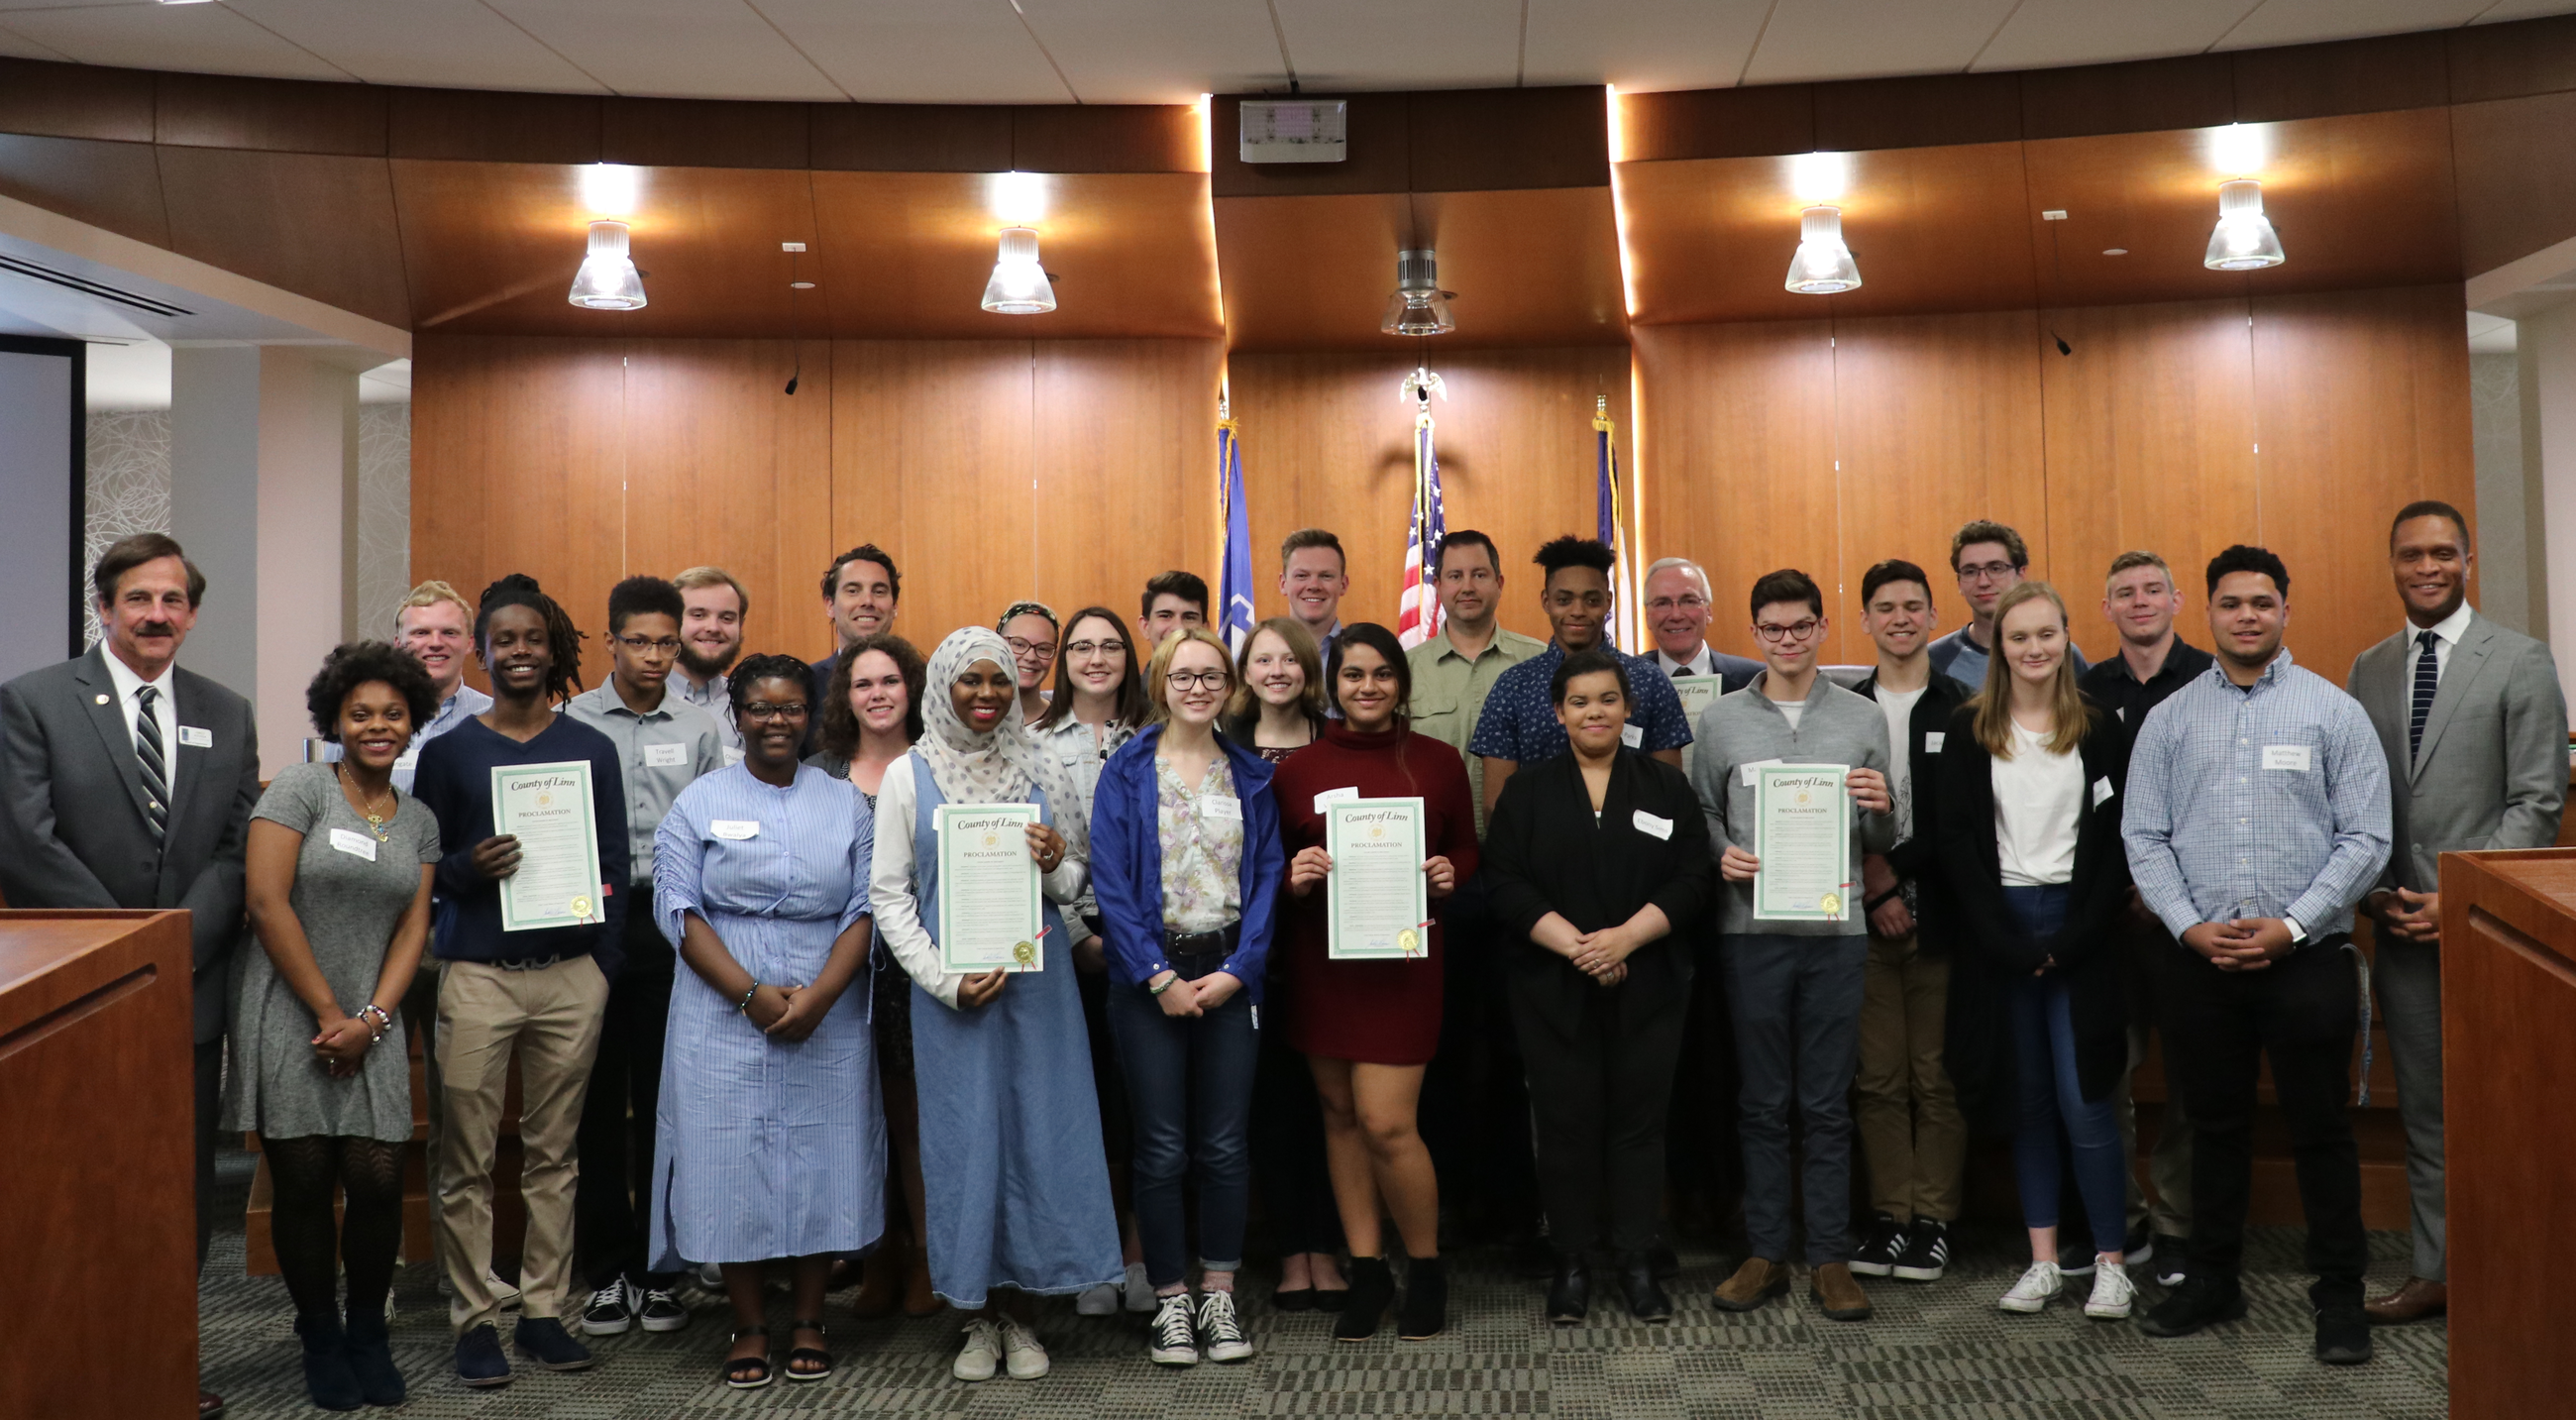 Future Leaders of Linn County Proclamation